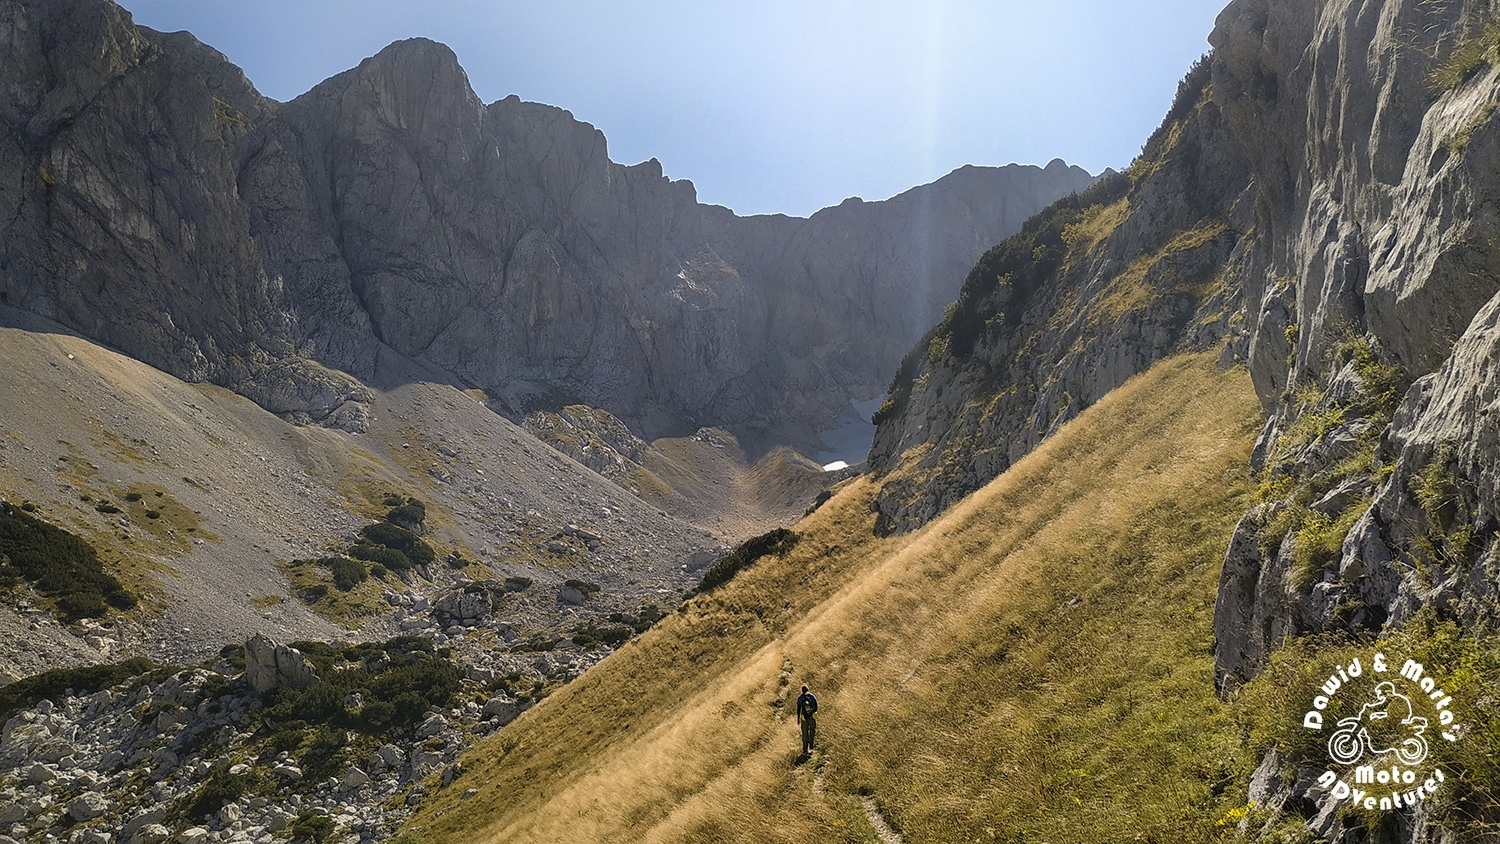 Crossing to Durmitor's Previje pass to Velika Kalica valley